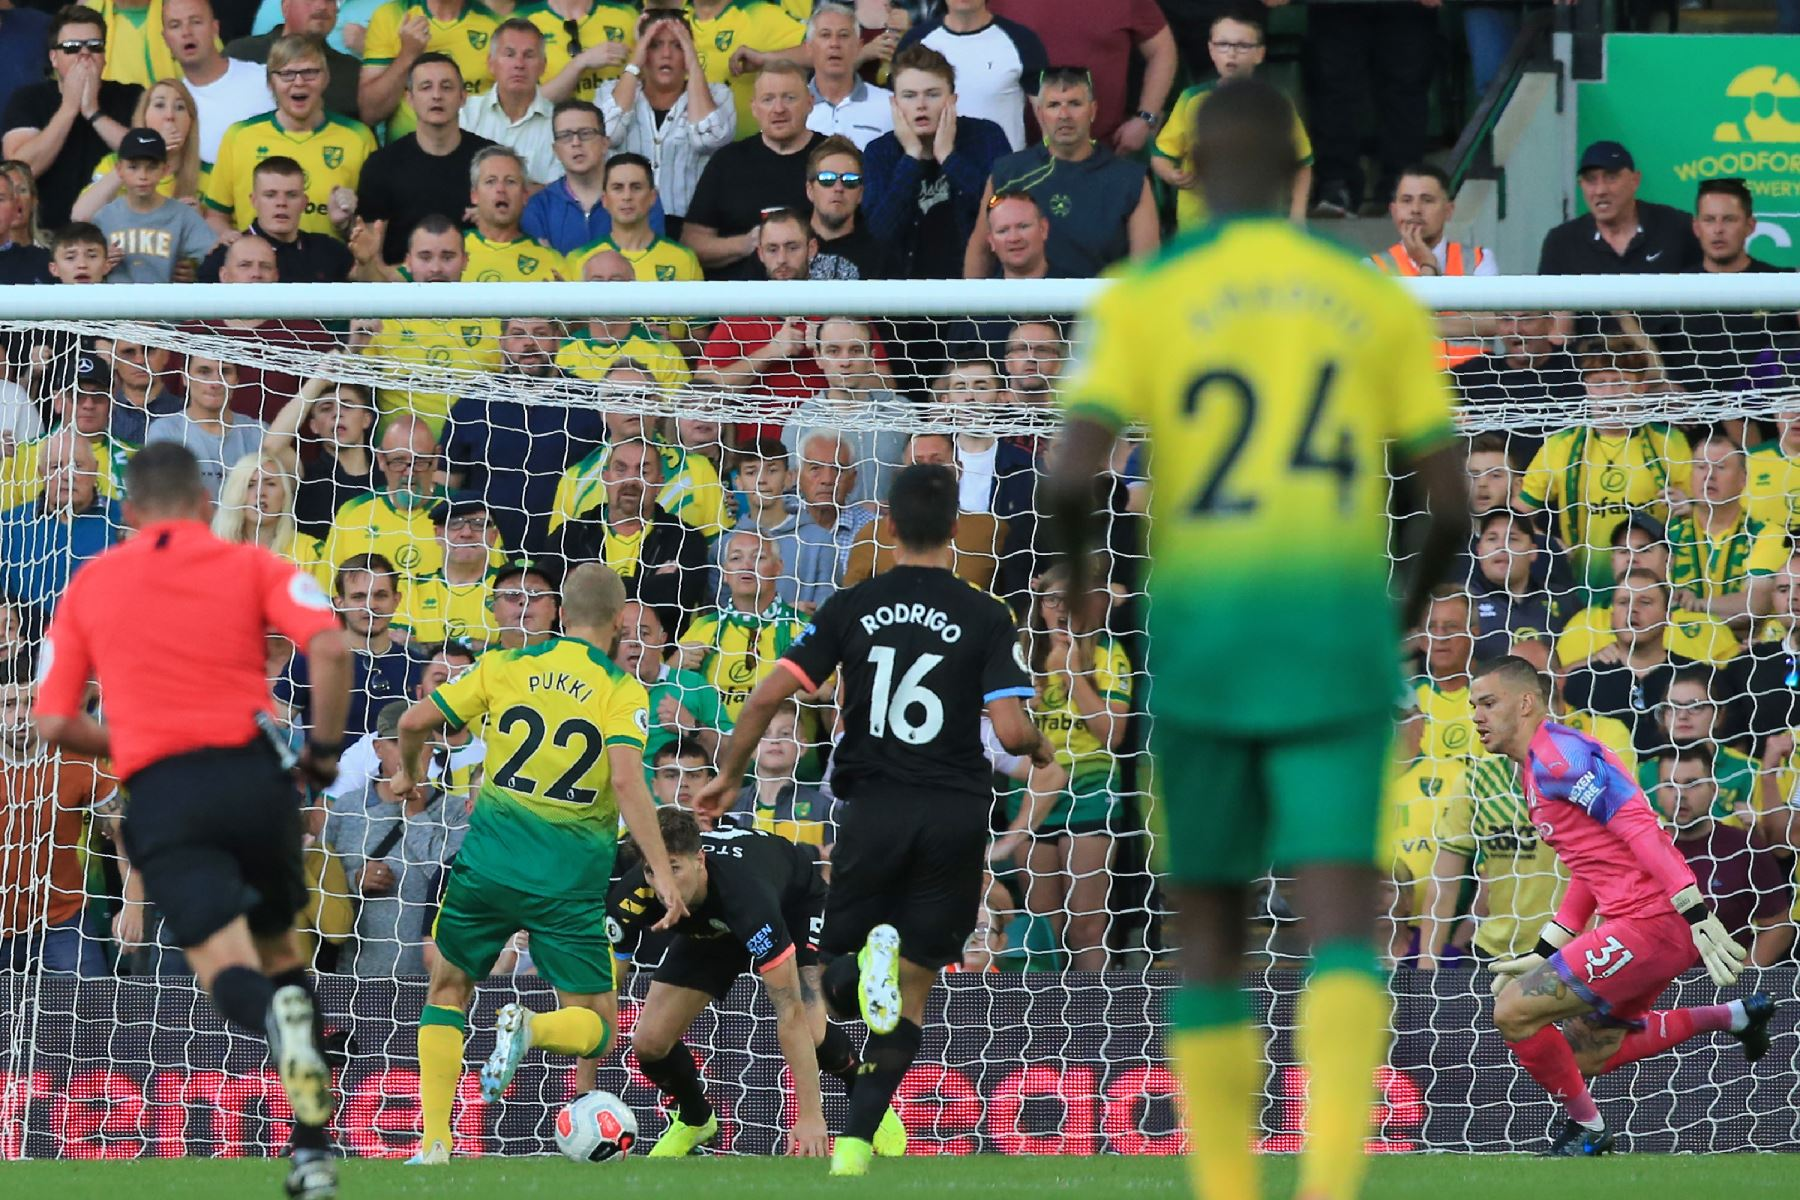 Manchester City perdió 3-2 ante Norwich City por la quinta jornada de la Premier League en el estadio Carrow Road. Foto: AFP